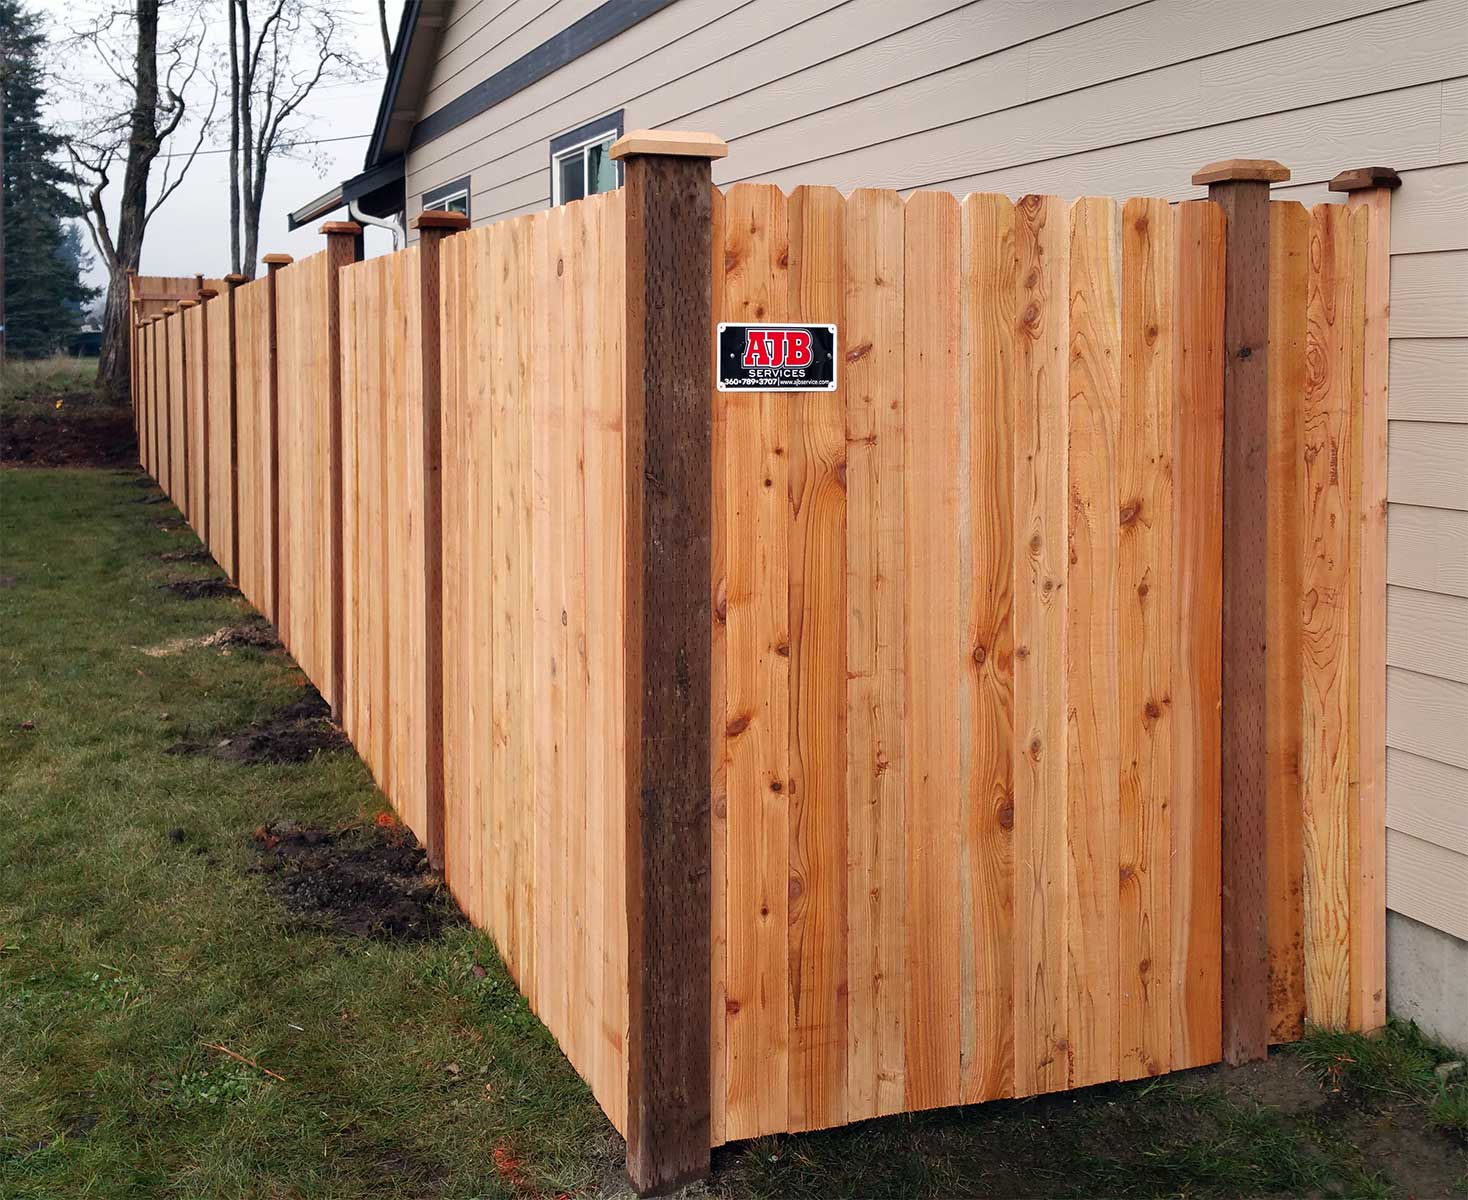 Cedar fence with dog ear pattern